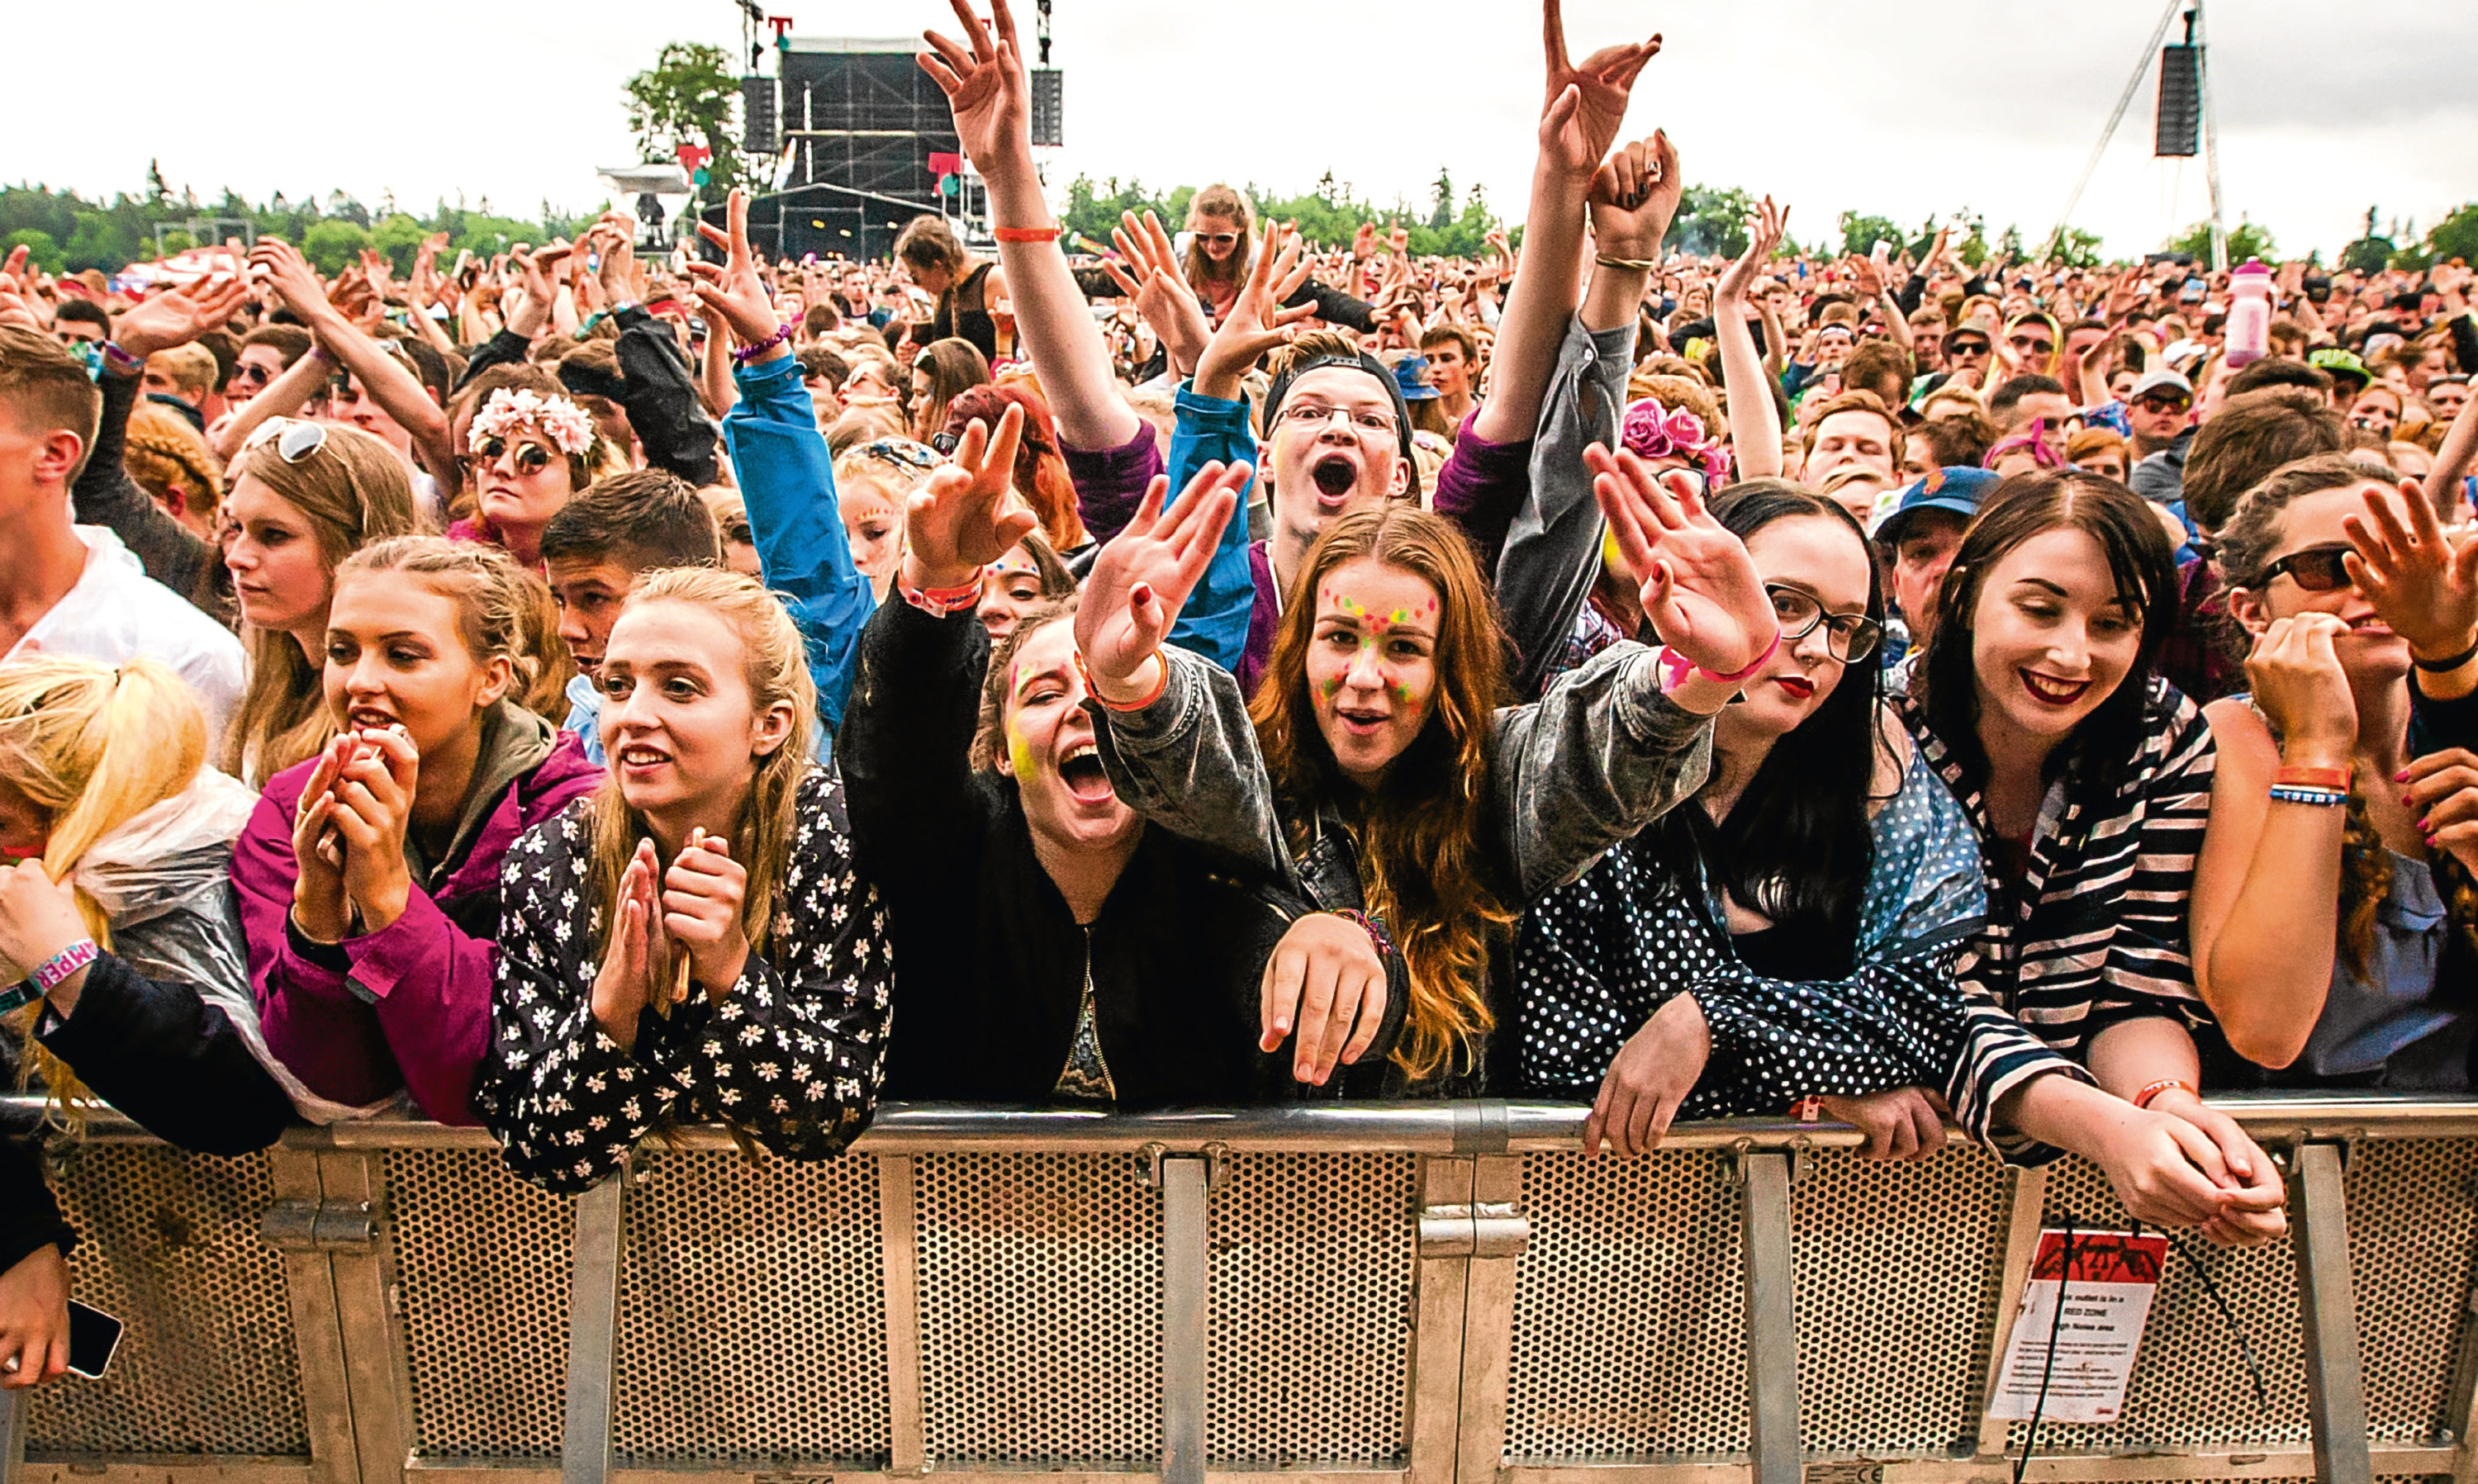 The crowds at T in the Park, 2016.